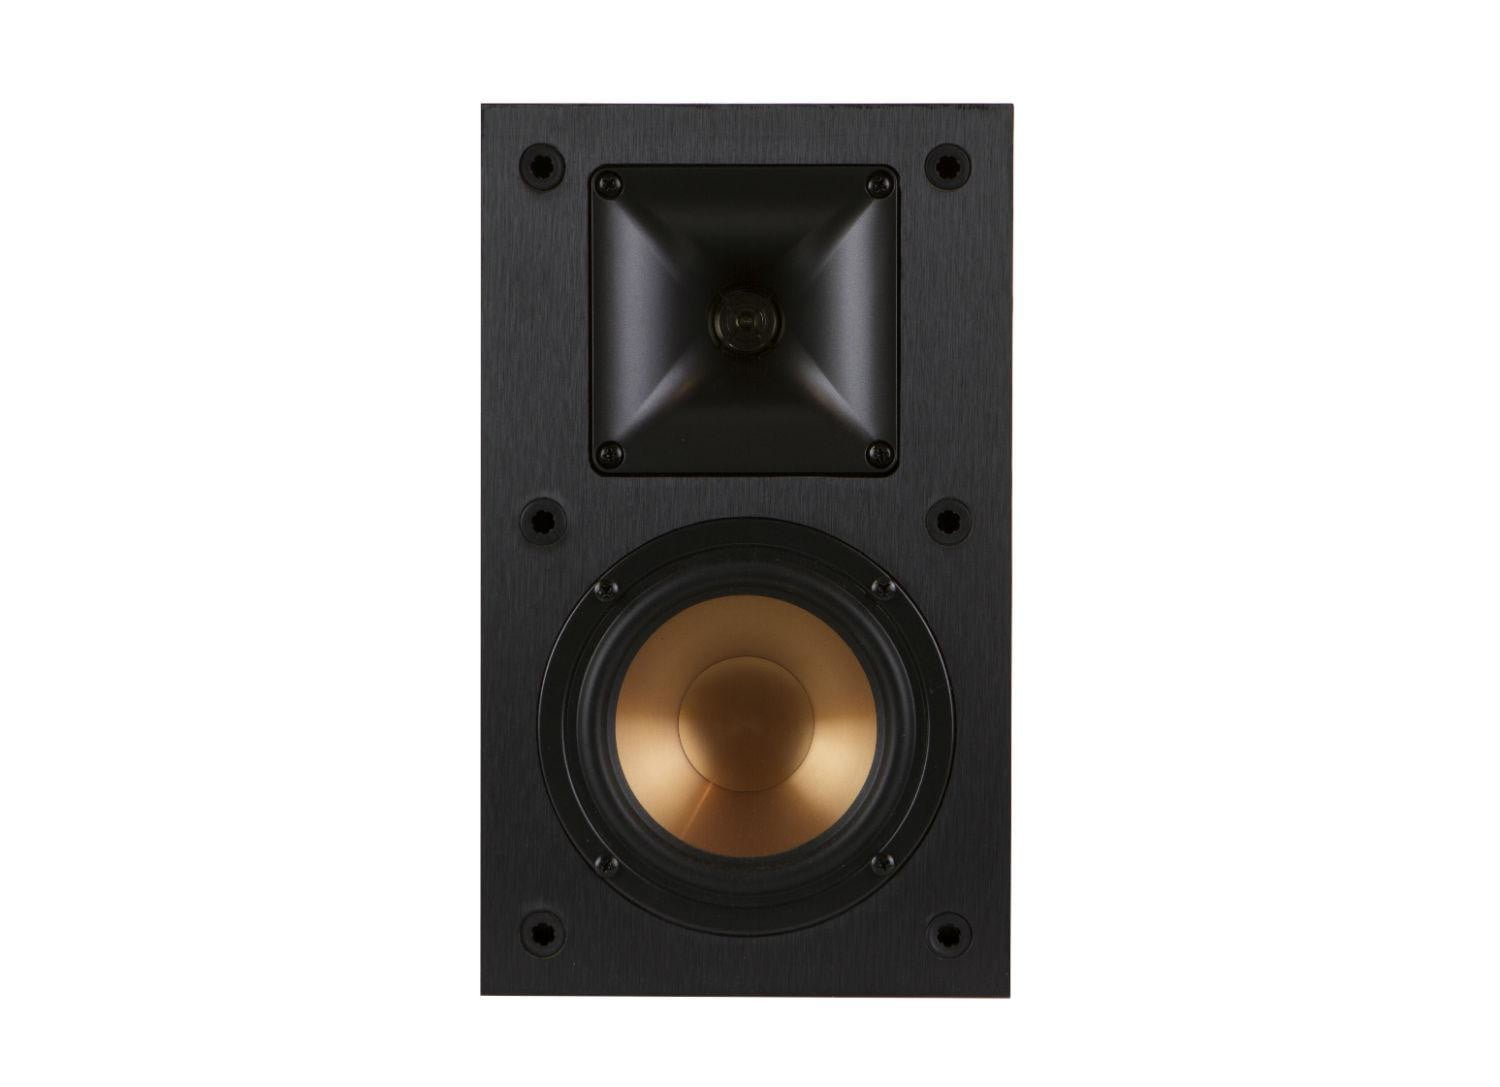 klipsch unveils stockpile new speakers reference home theater line r 14m front